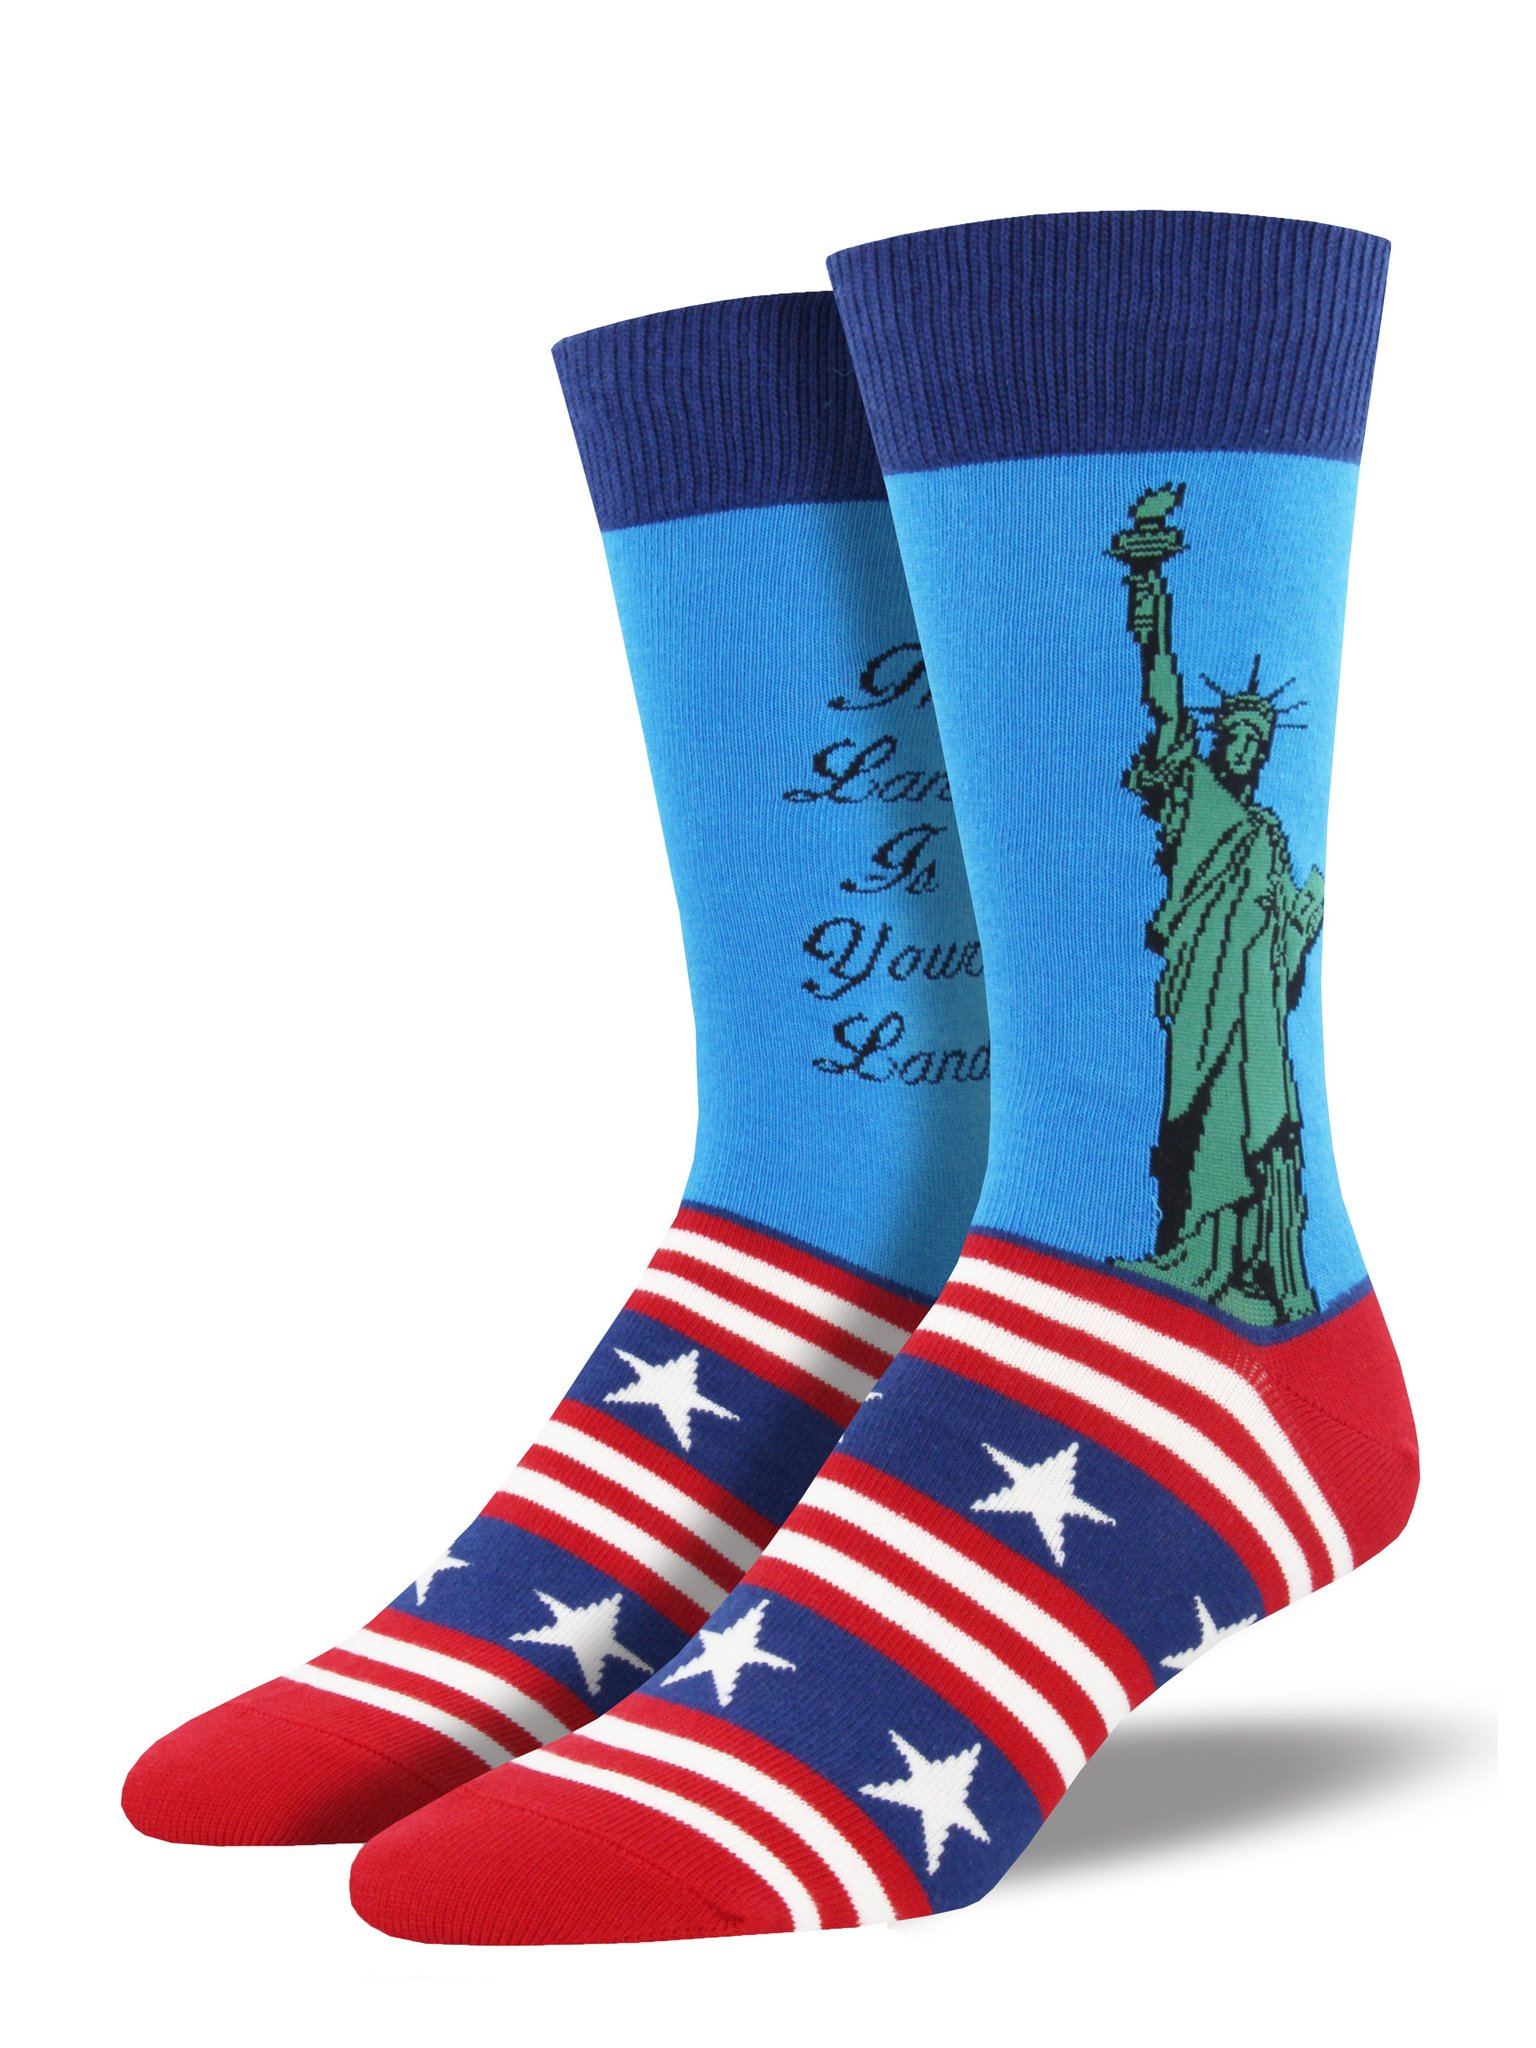 Lady Liberty Socks, Men's, Blue